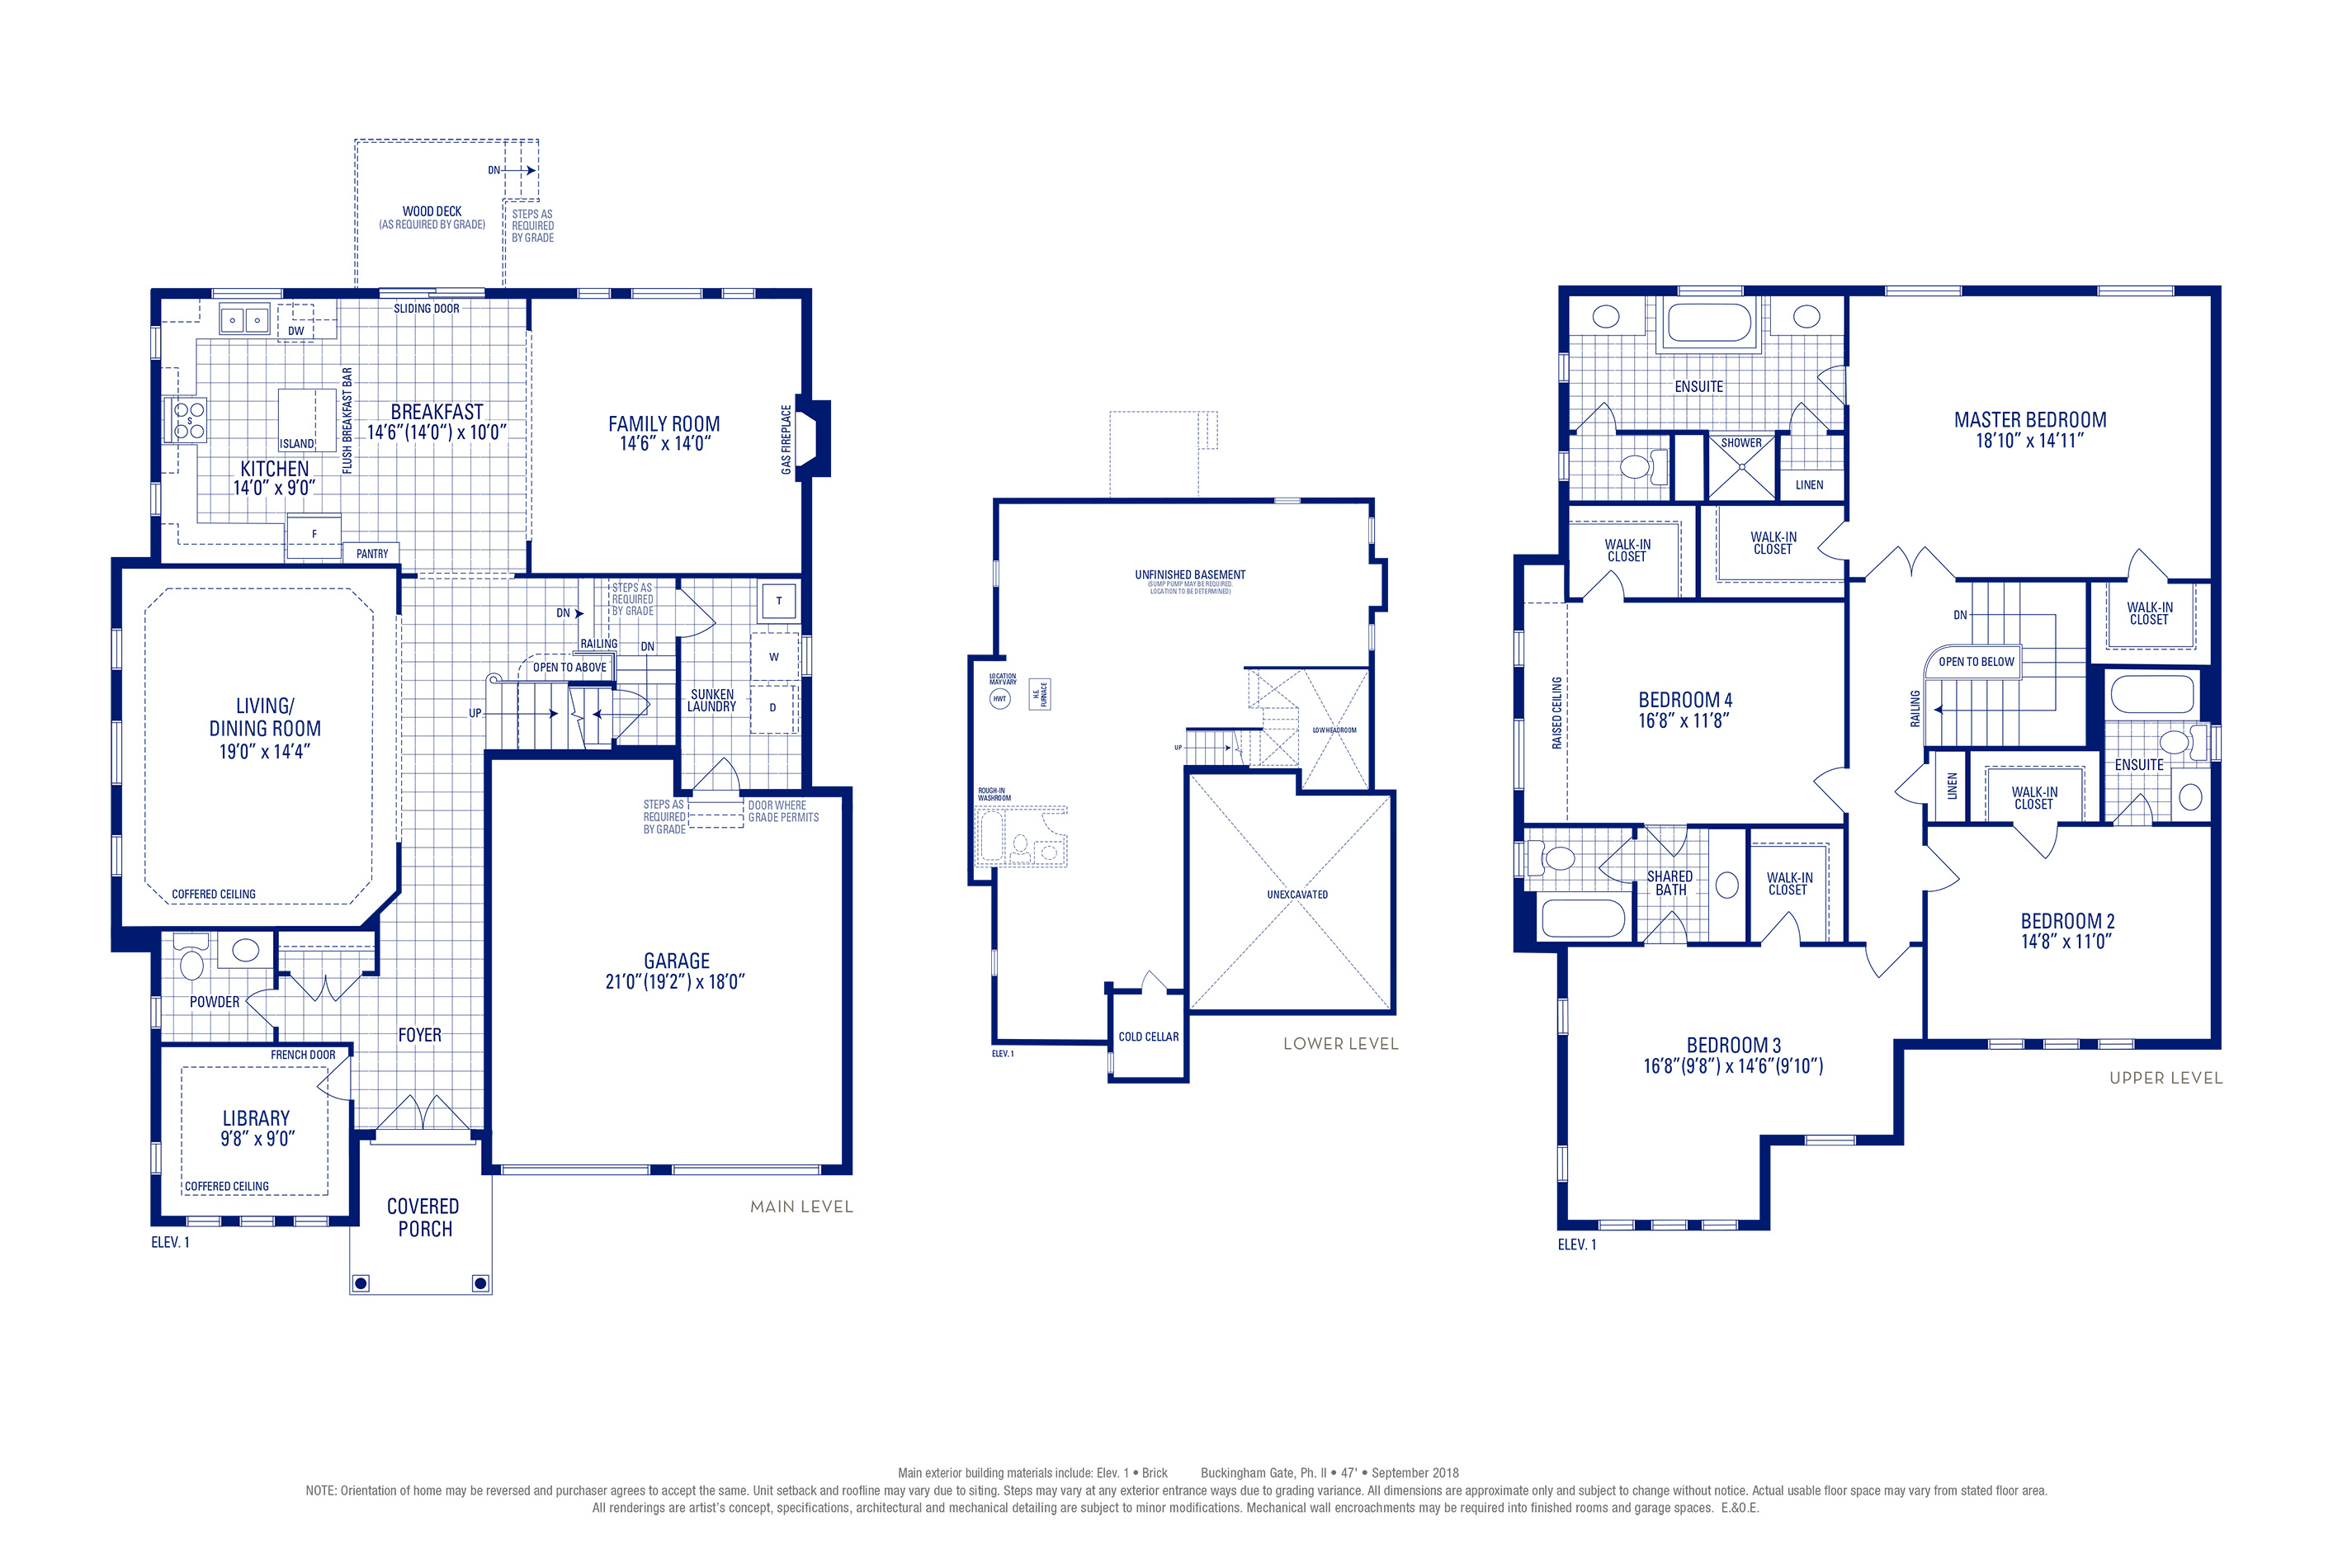 Stafford 12 Elev. 1 Floorplan